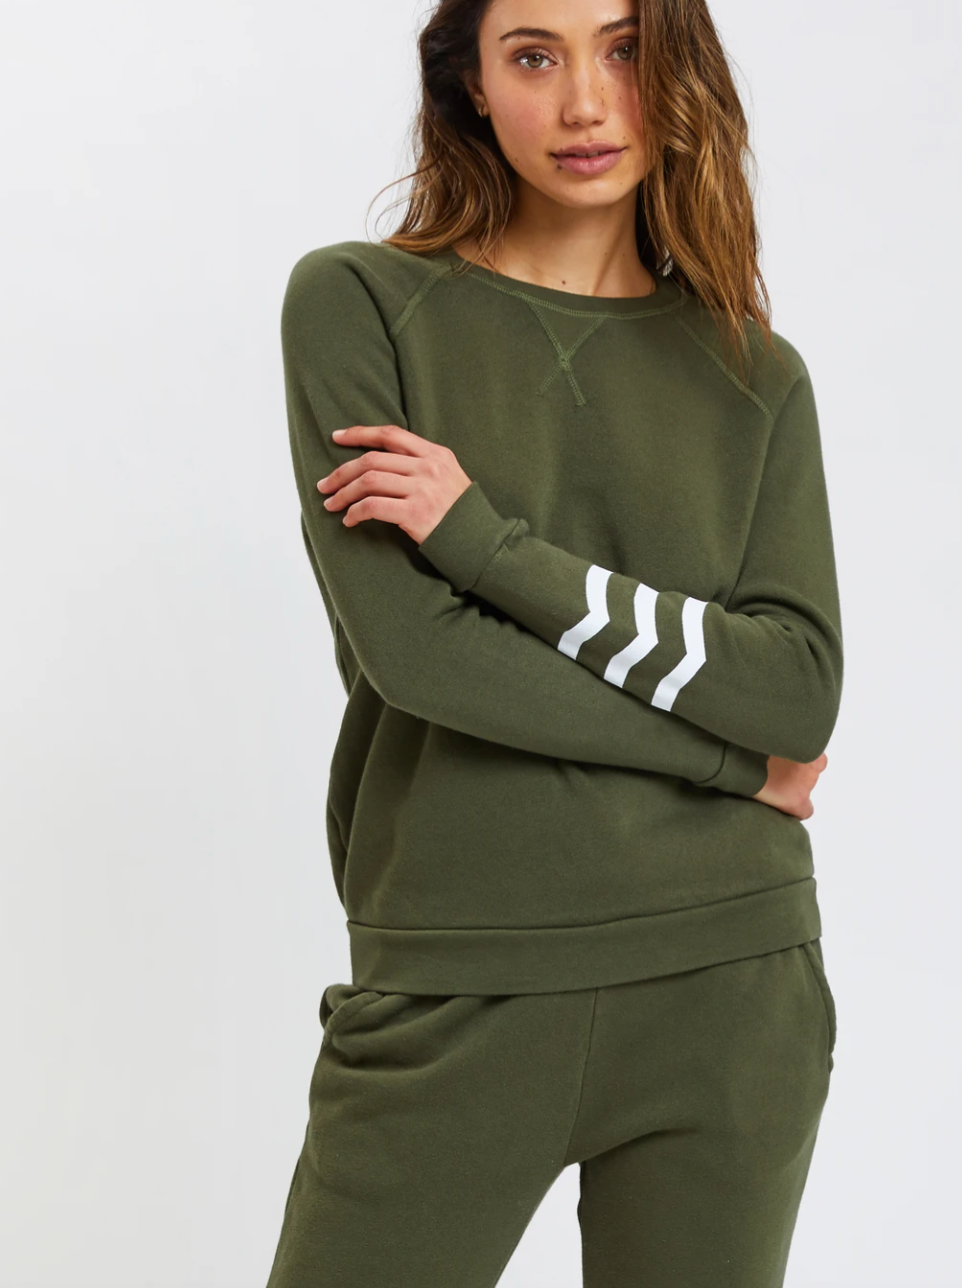 Sol Angeles Waves Essential Coastal Pullover in Olive